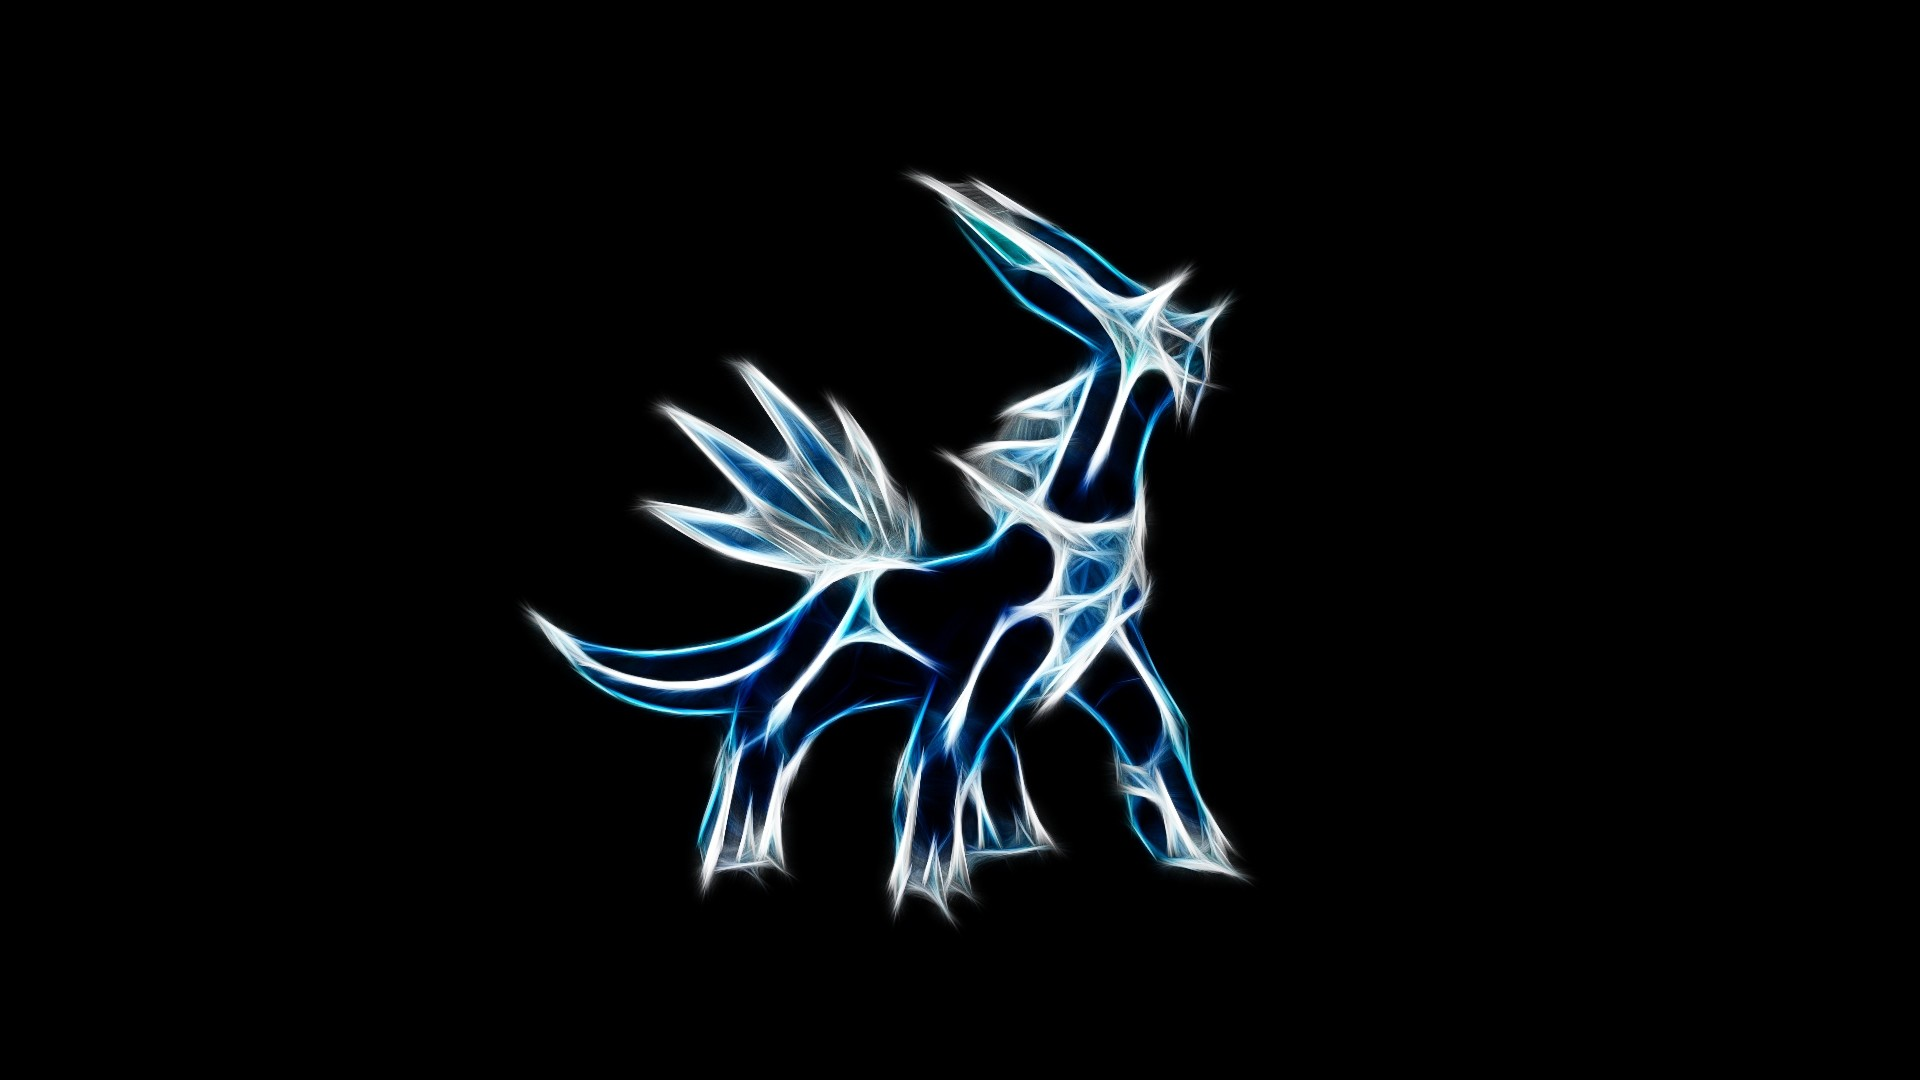 1920x1080 ... Dialga And Palkia Wallpaper ...